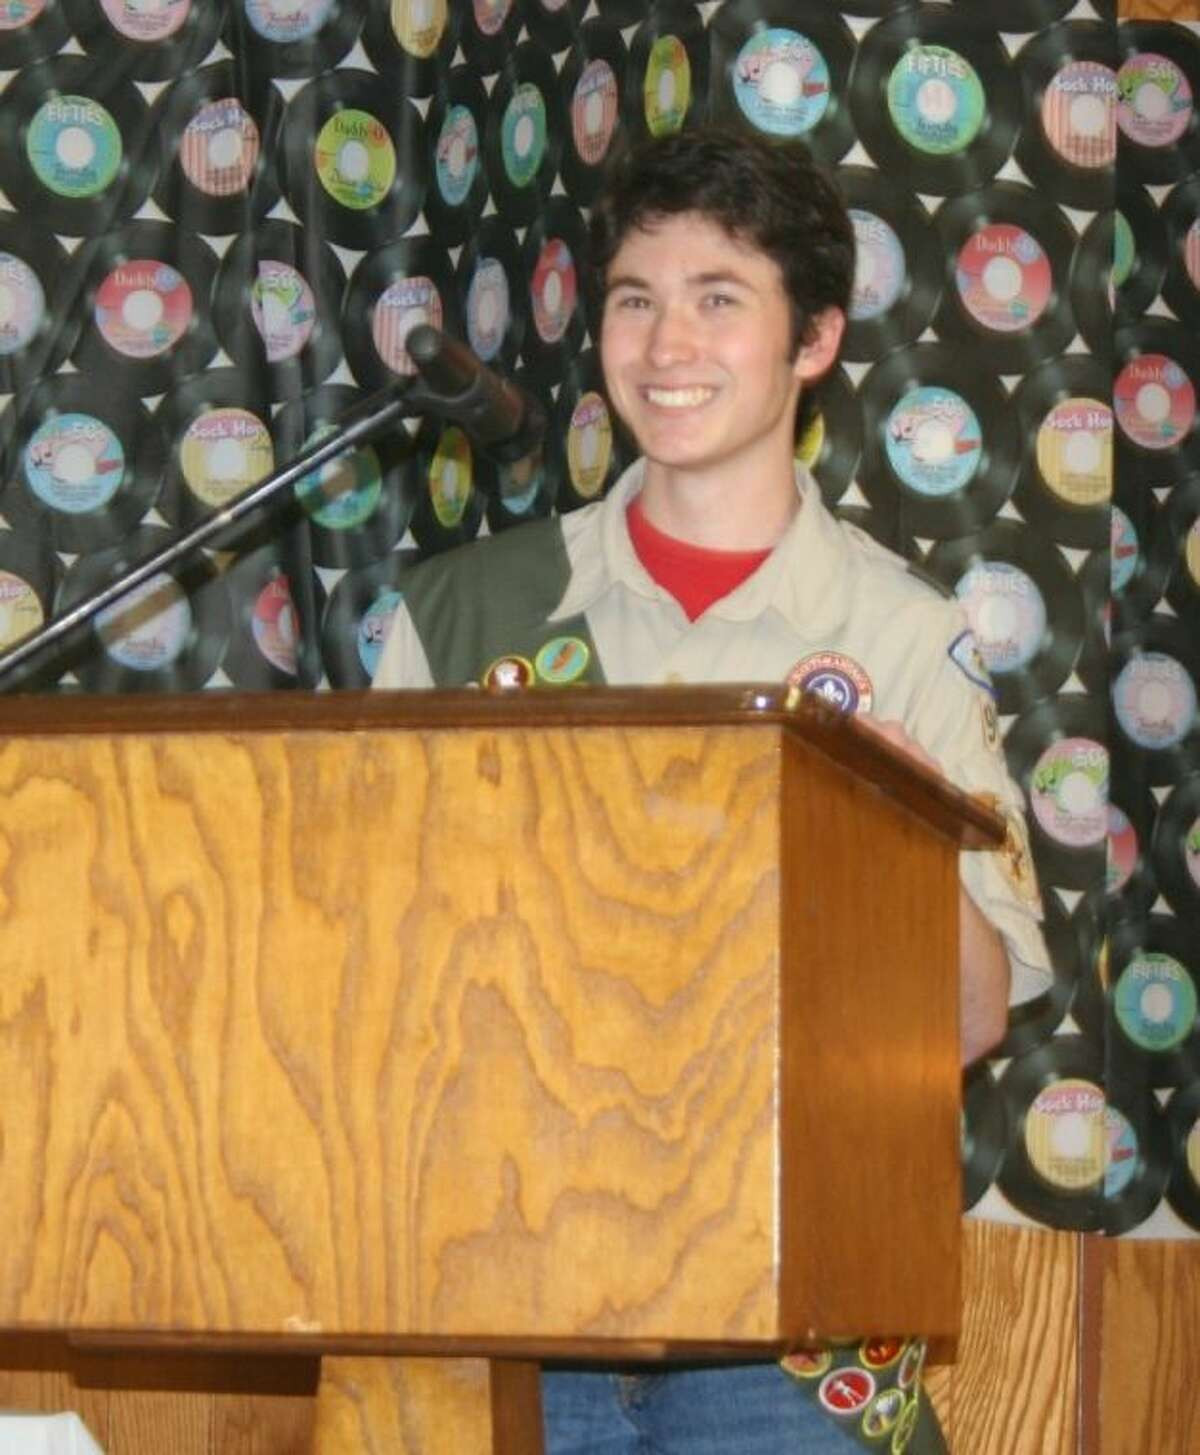 Eagle Scout Cory Rodriguez gives a speech during his Eagle Scout ceremony on Saturday, Jan. 25.